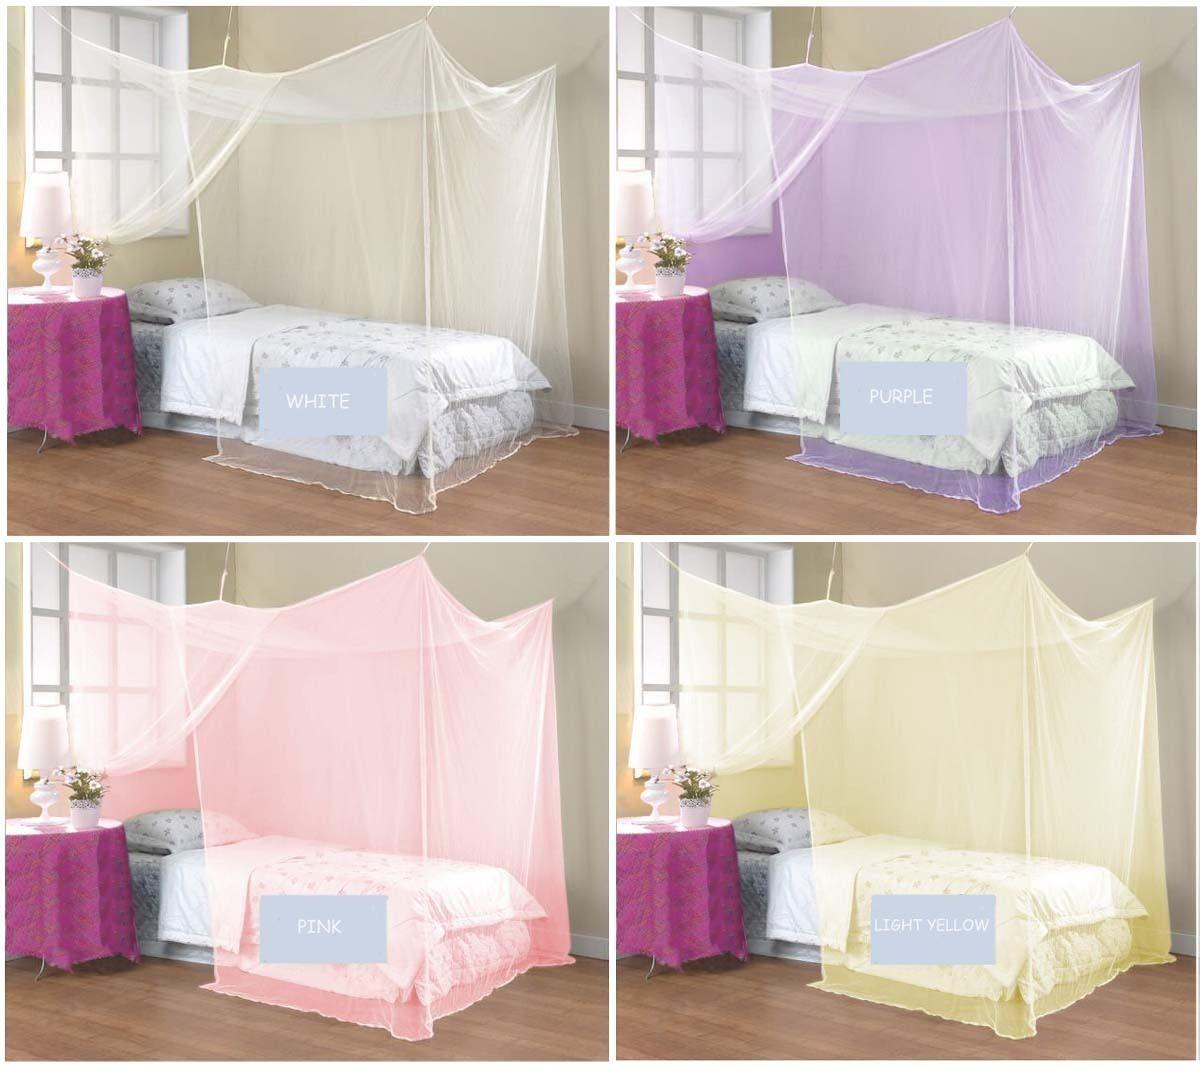 4 Corner Poster Student Family Use Canopy Bed Mosquito Net Twin Full Queen King No See Um Netting Mosquito Net For Cot From Haorizi123 $16.08| Dhgate.Com  sc 1 st  DHgate.com & 4 Corner Poster Student Family Use Canopy Bed Mosquito Net Twin ...